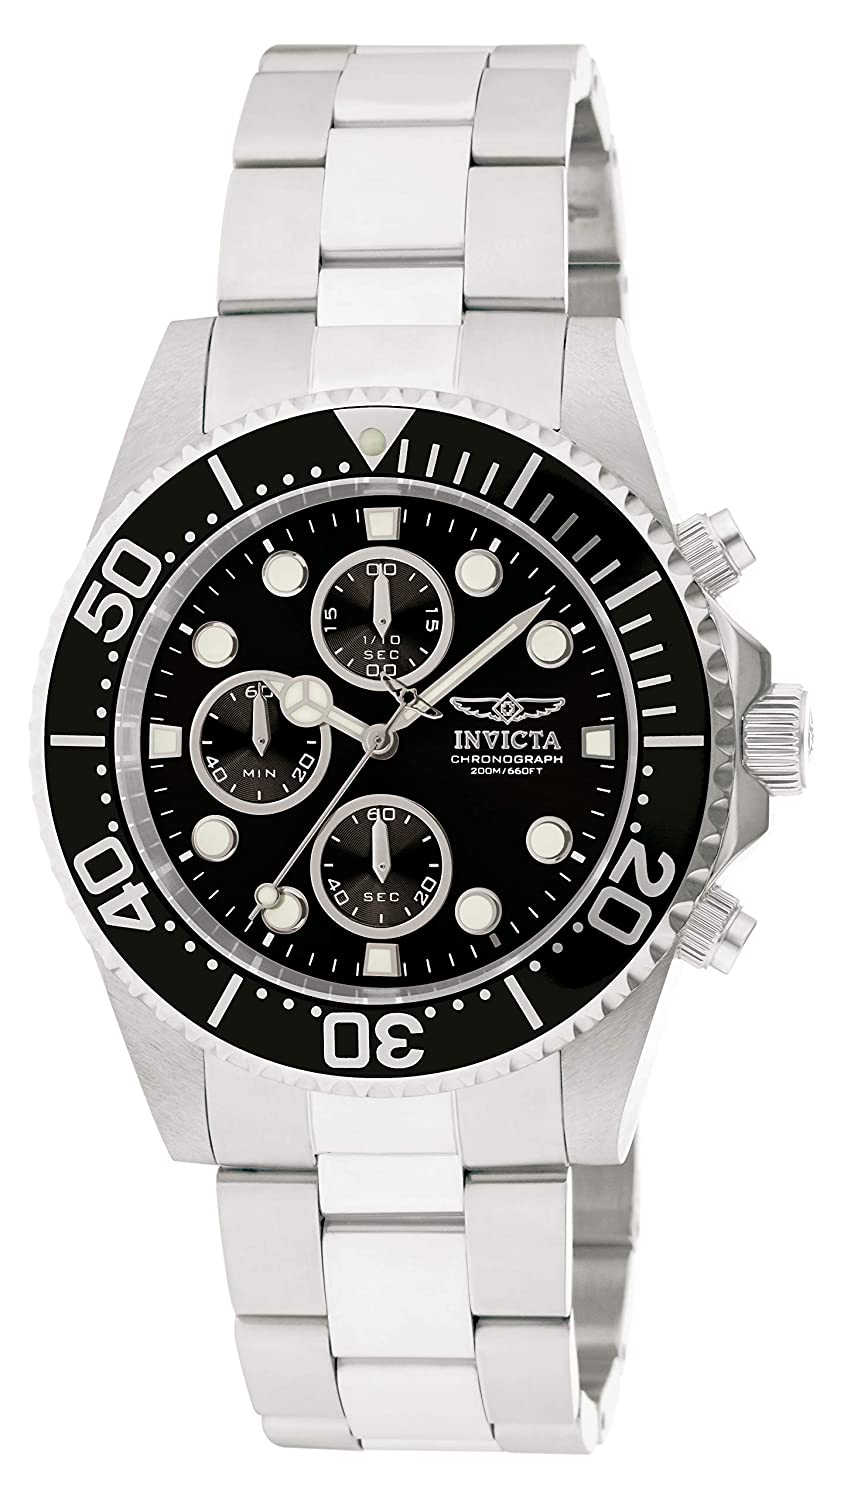 Amazon.com: Invicta Men's 1768 Pro Diver Collection Stainless Steel Watch  with Black Dial: Invicta: Watches